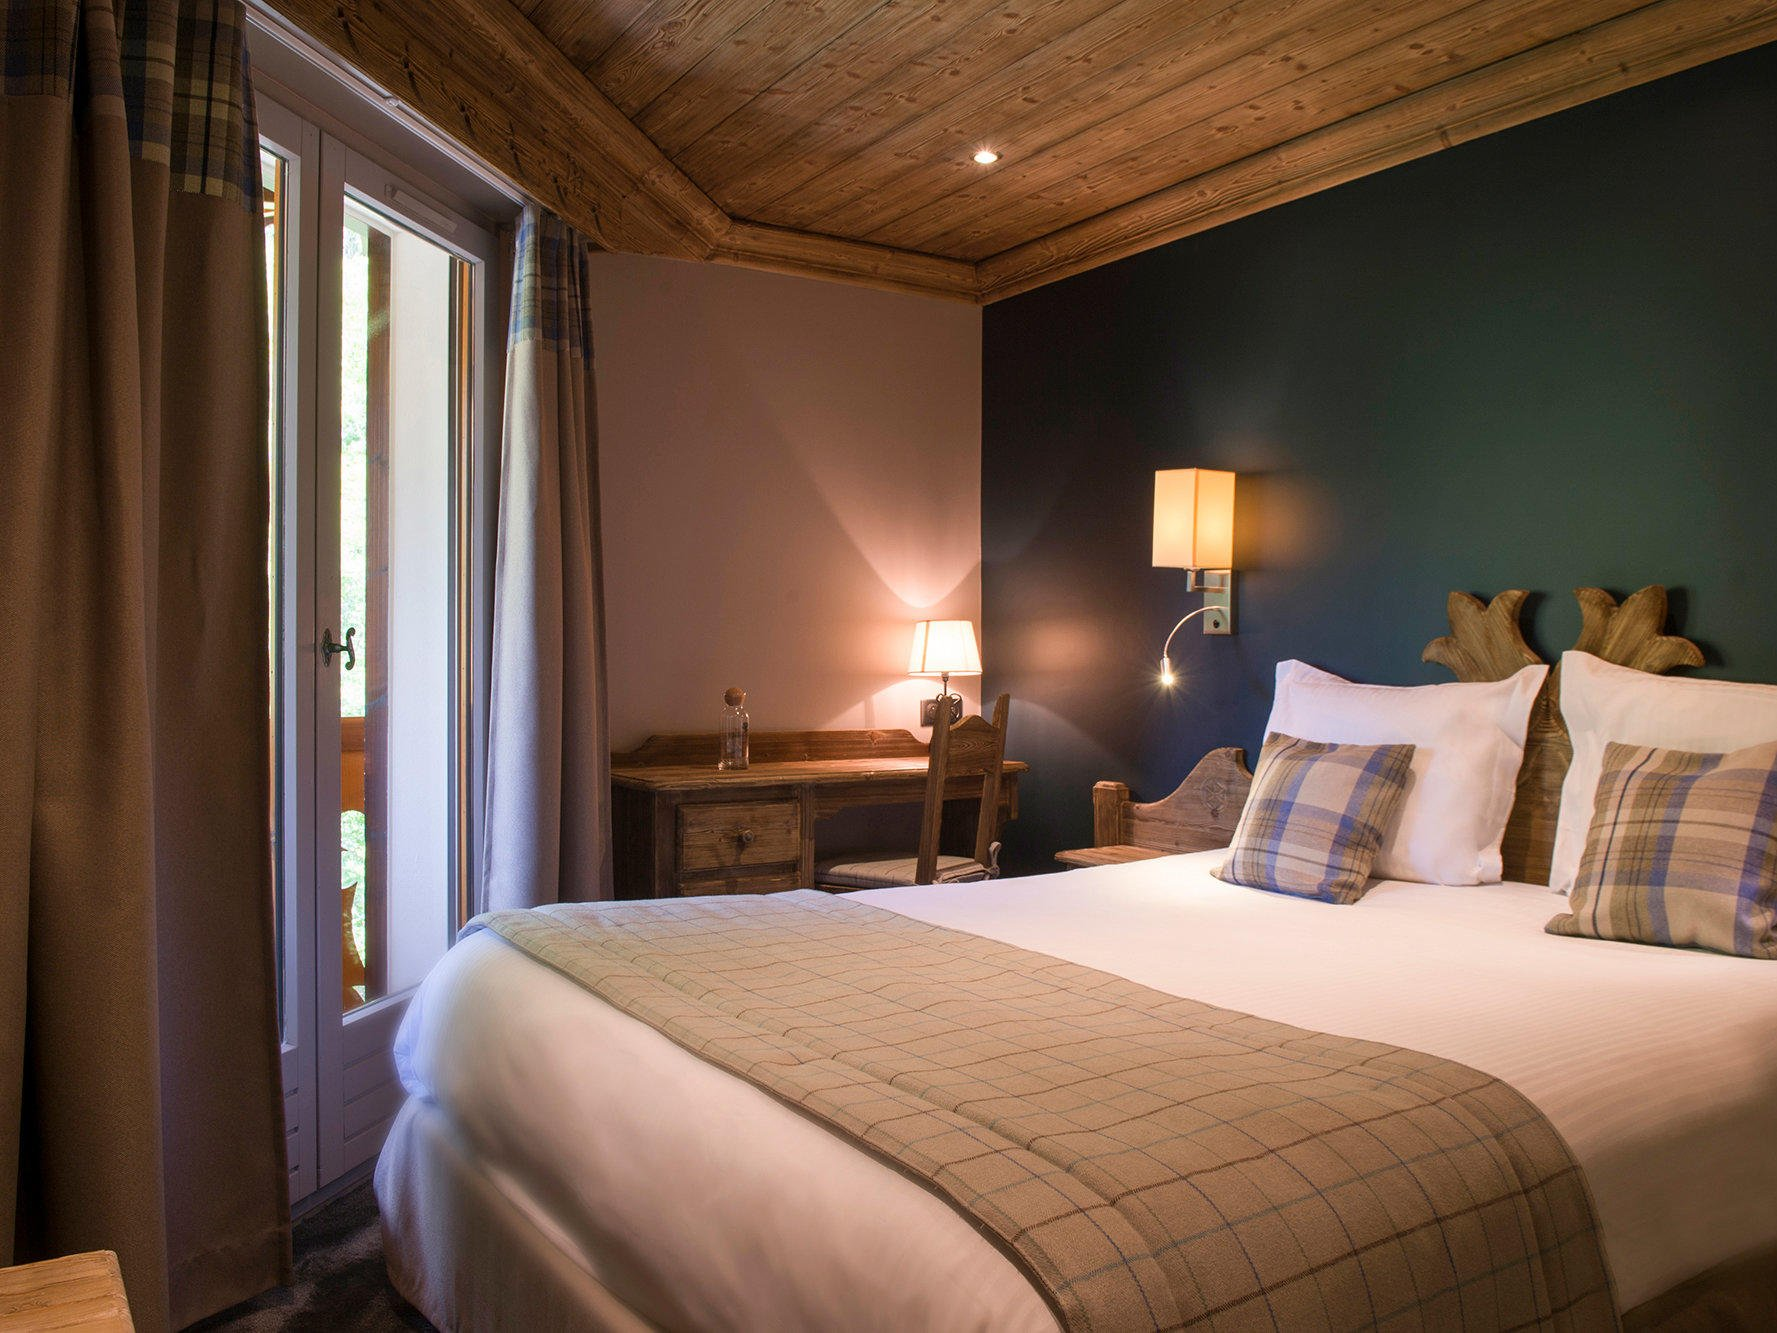 Standard Double Room at Hotel Gentianettes, The Originals Relais